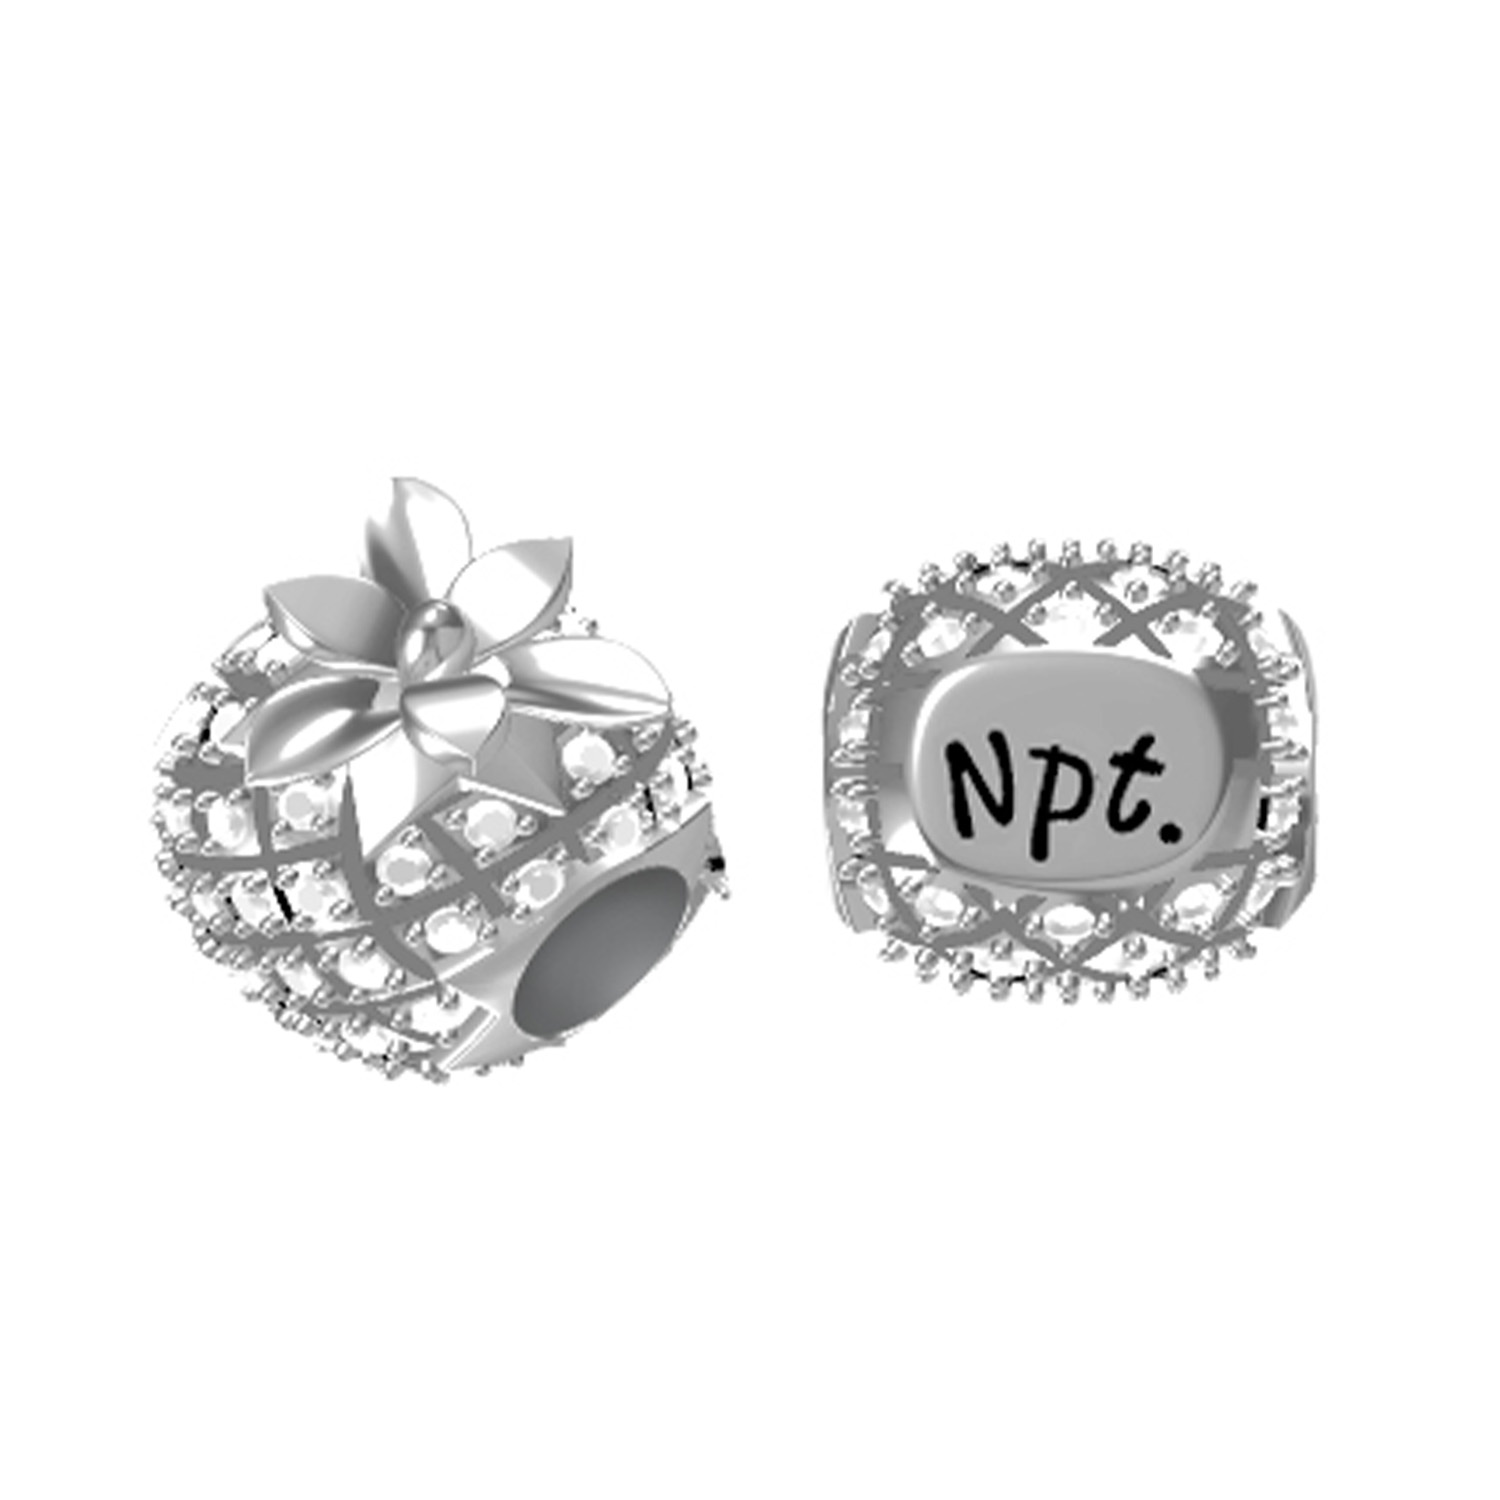 Pineapple Newport Charm.jpg